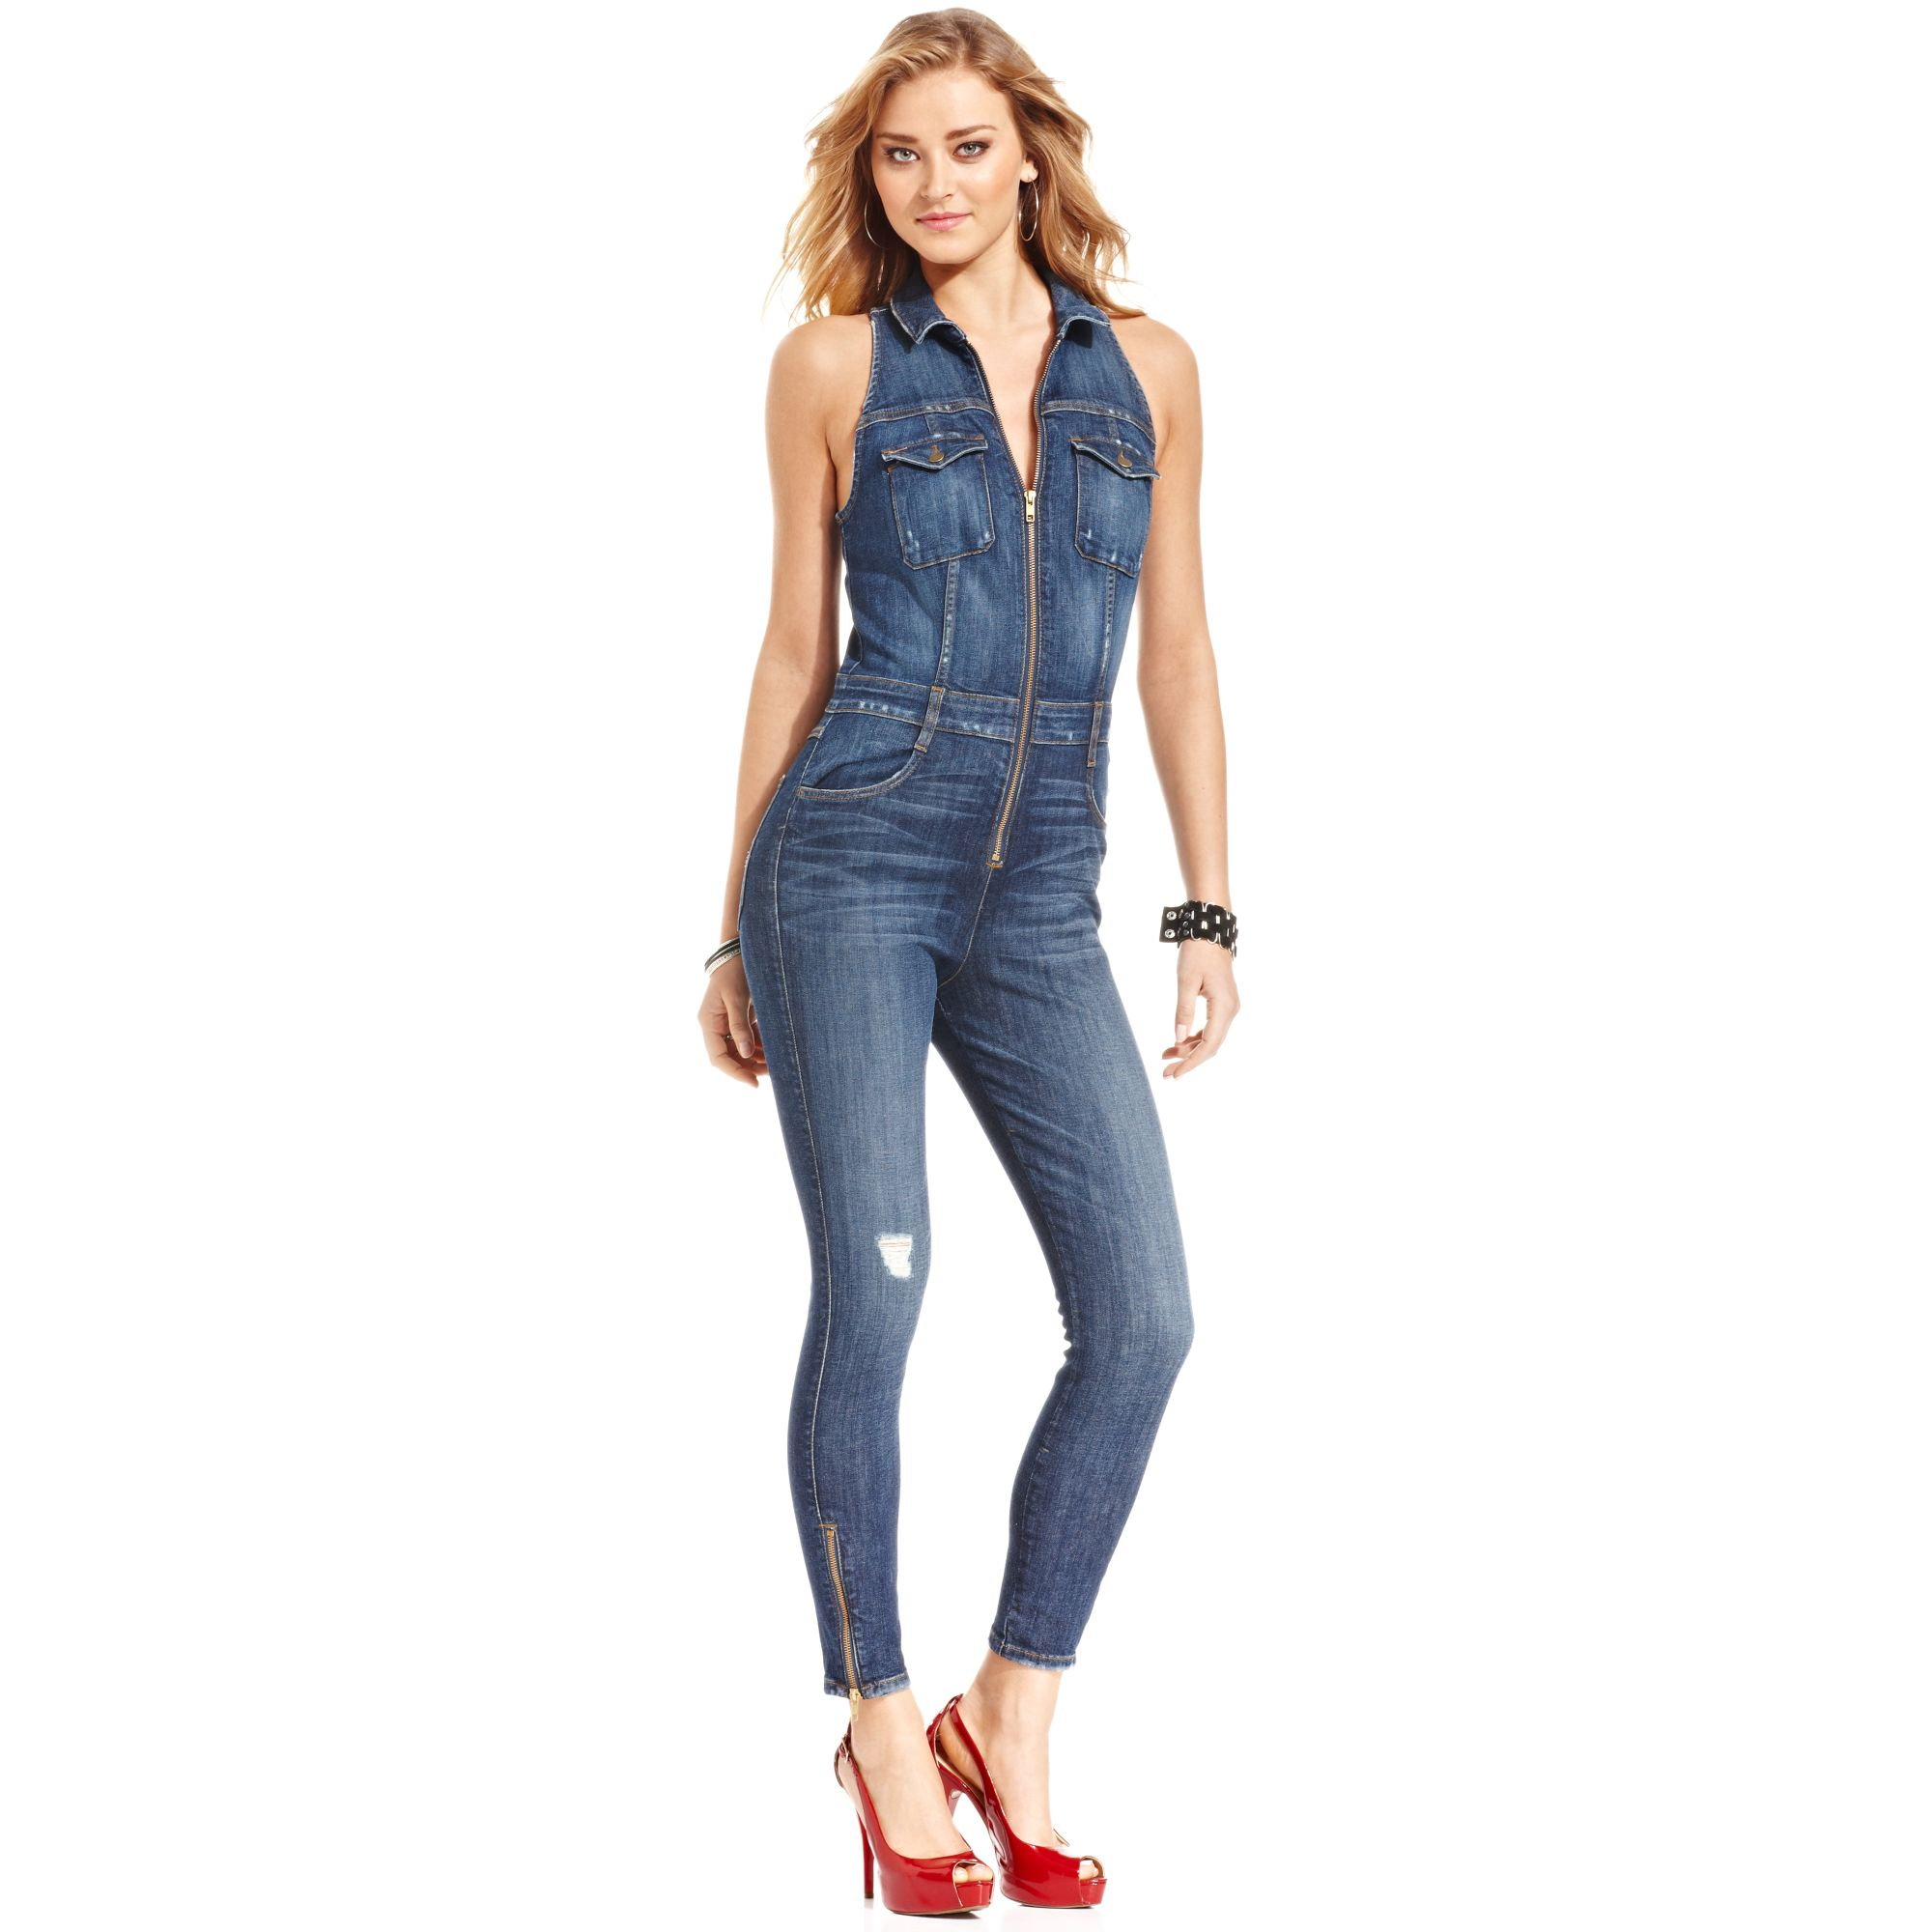 a9435402333c Lyst - Guess Cara Denim Jumpsuit in Blue